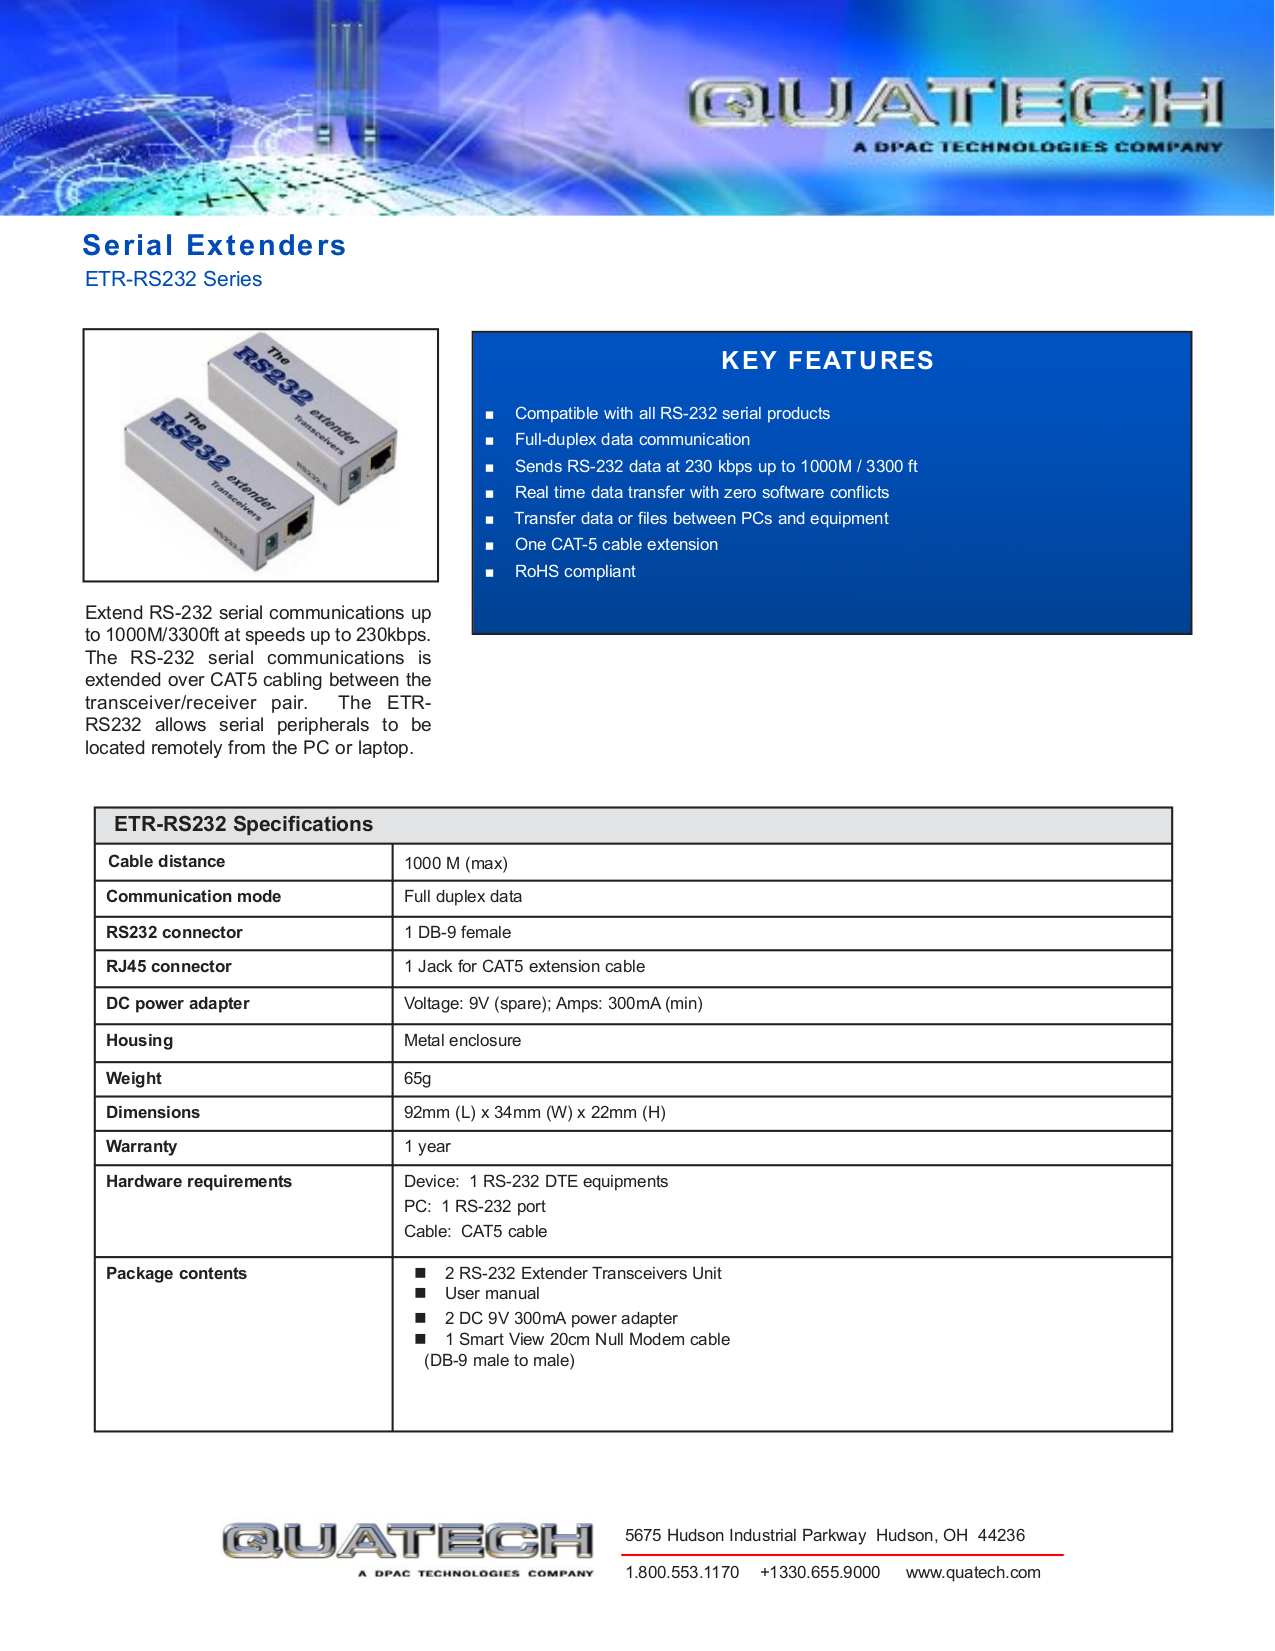 pdf for Quatech Other ETR-RS232 Extenders manual